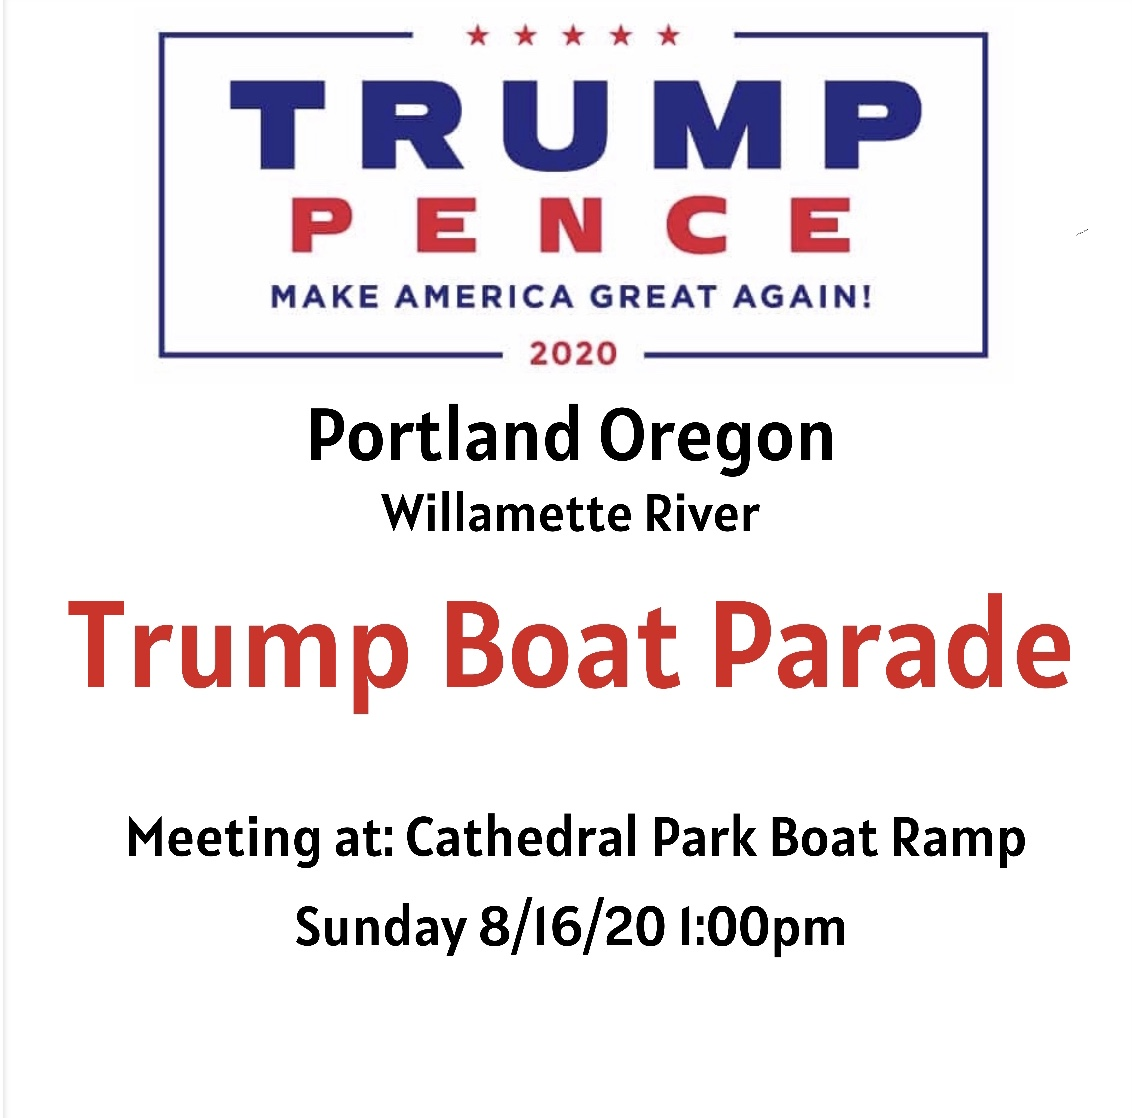 Cathedral Park Boat Ramp at 1:00 p.m.